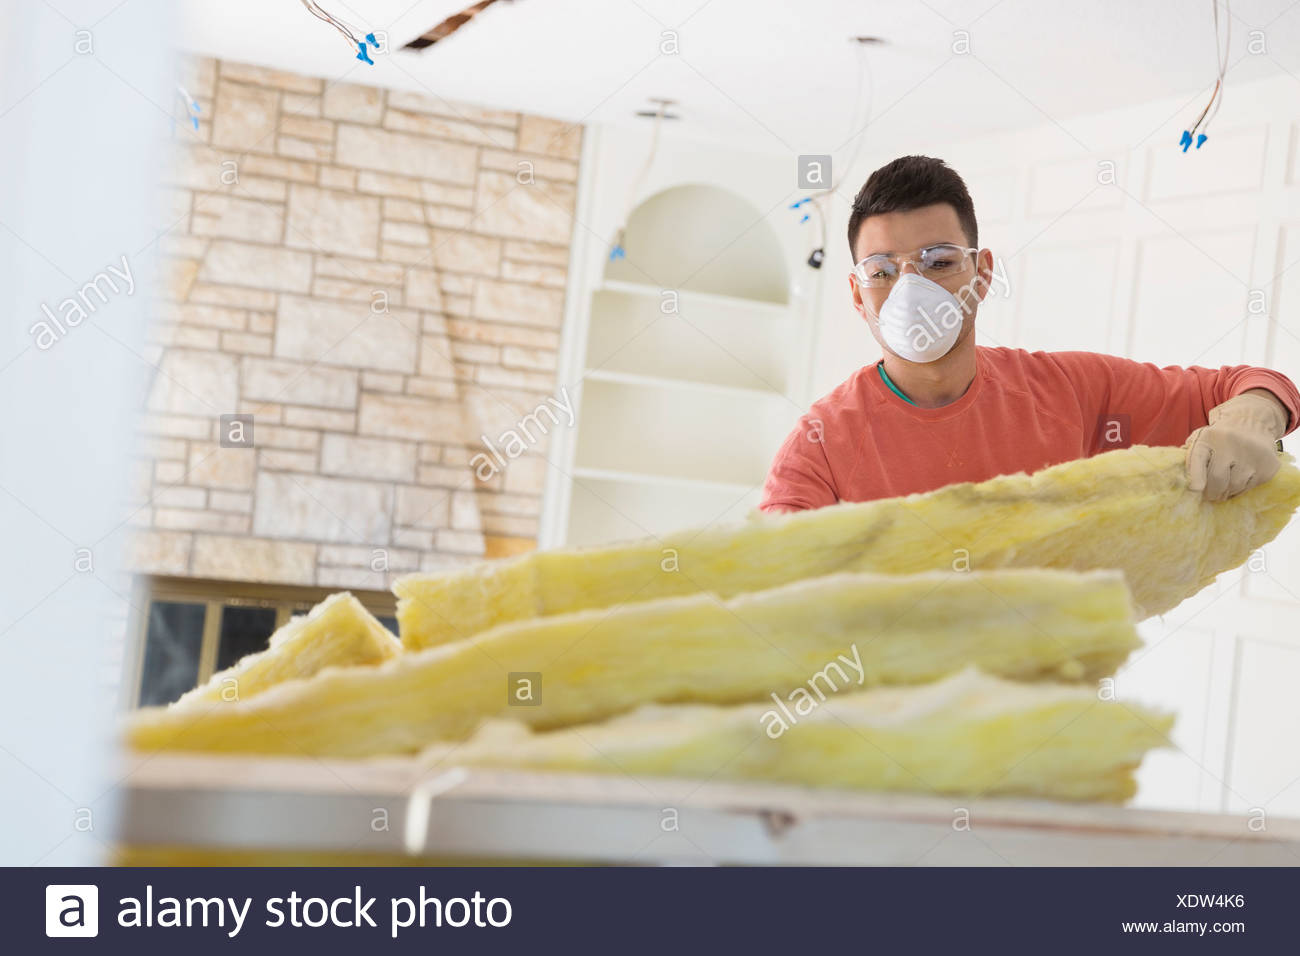 Young man installing insulation at home - Stock Image